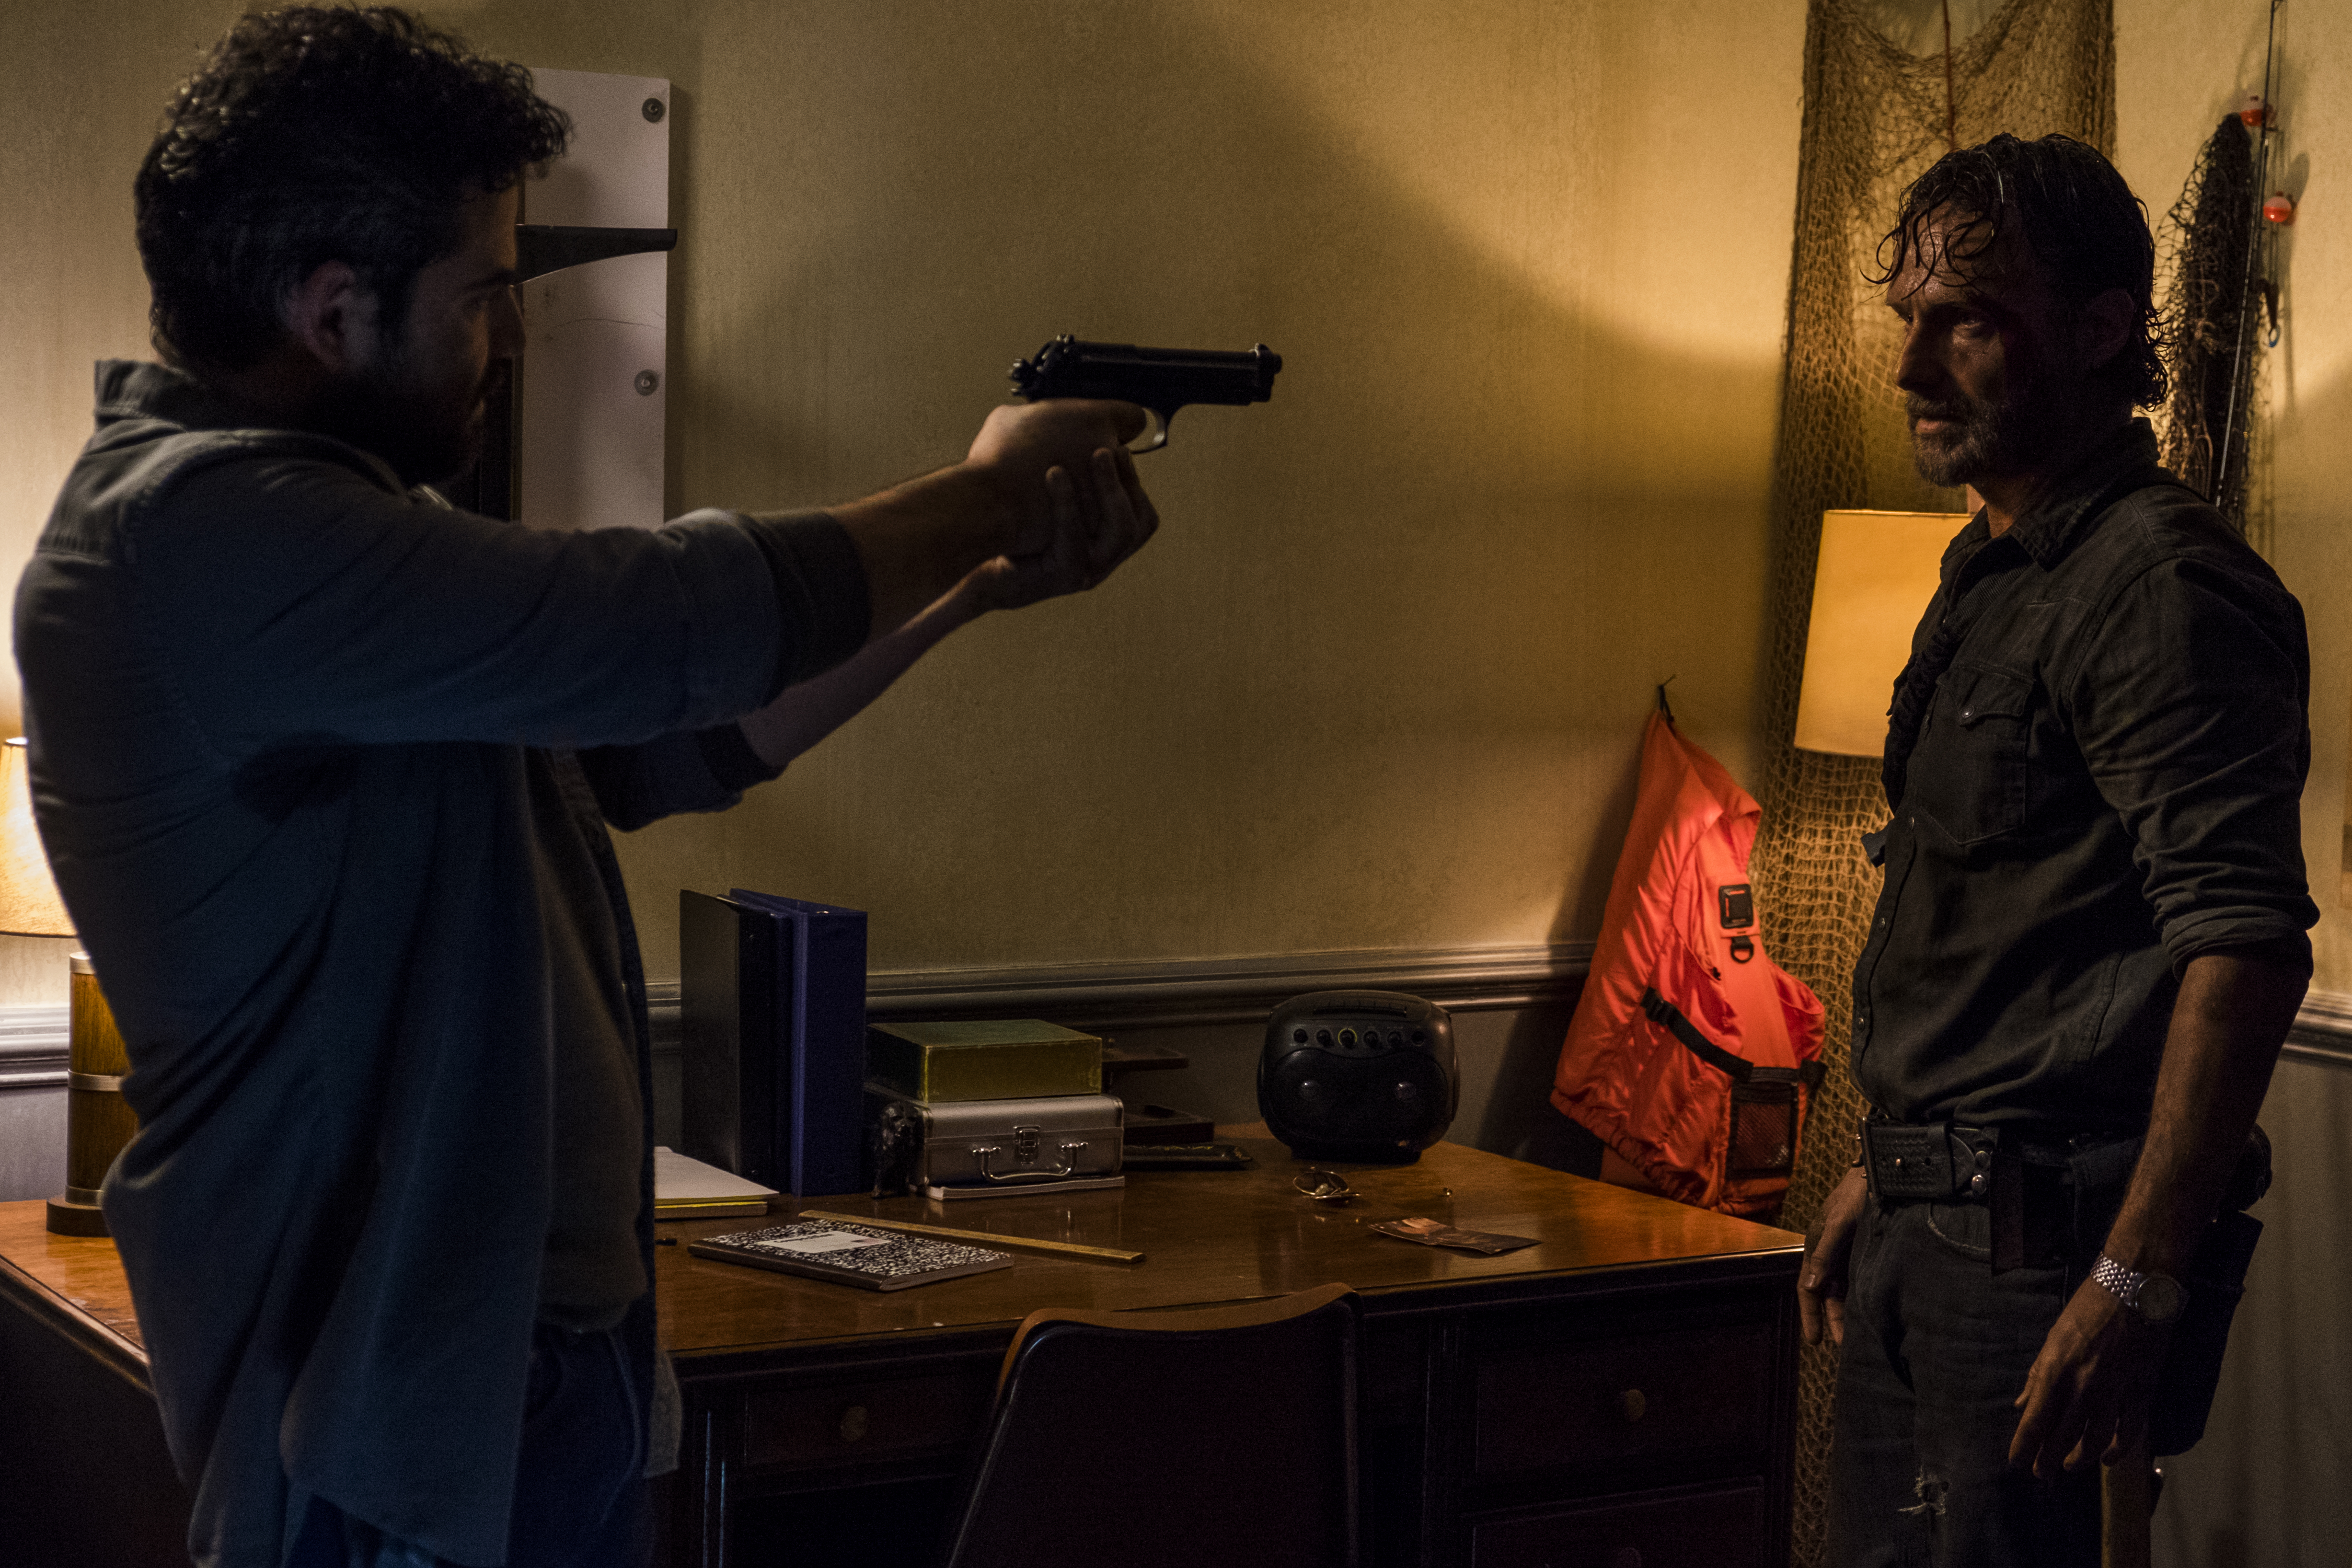 Andrew Lincoln as Rick Grimes and Juan Gabriel Pareja as Morales in The Walking Dead Season 8, Episode 3